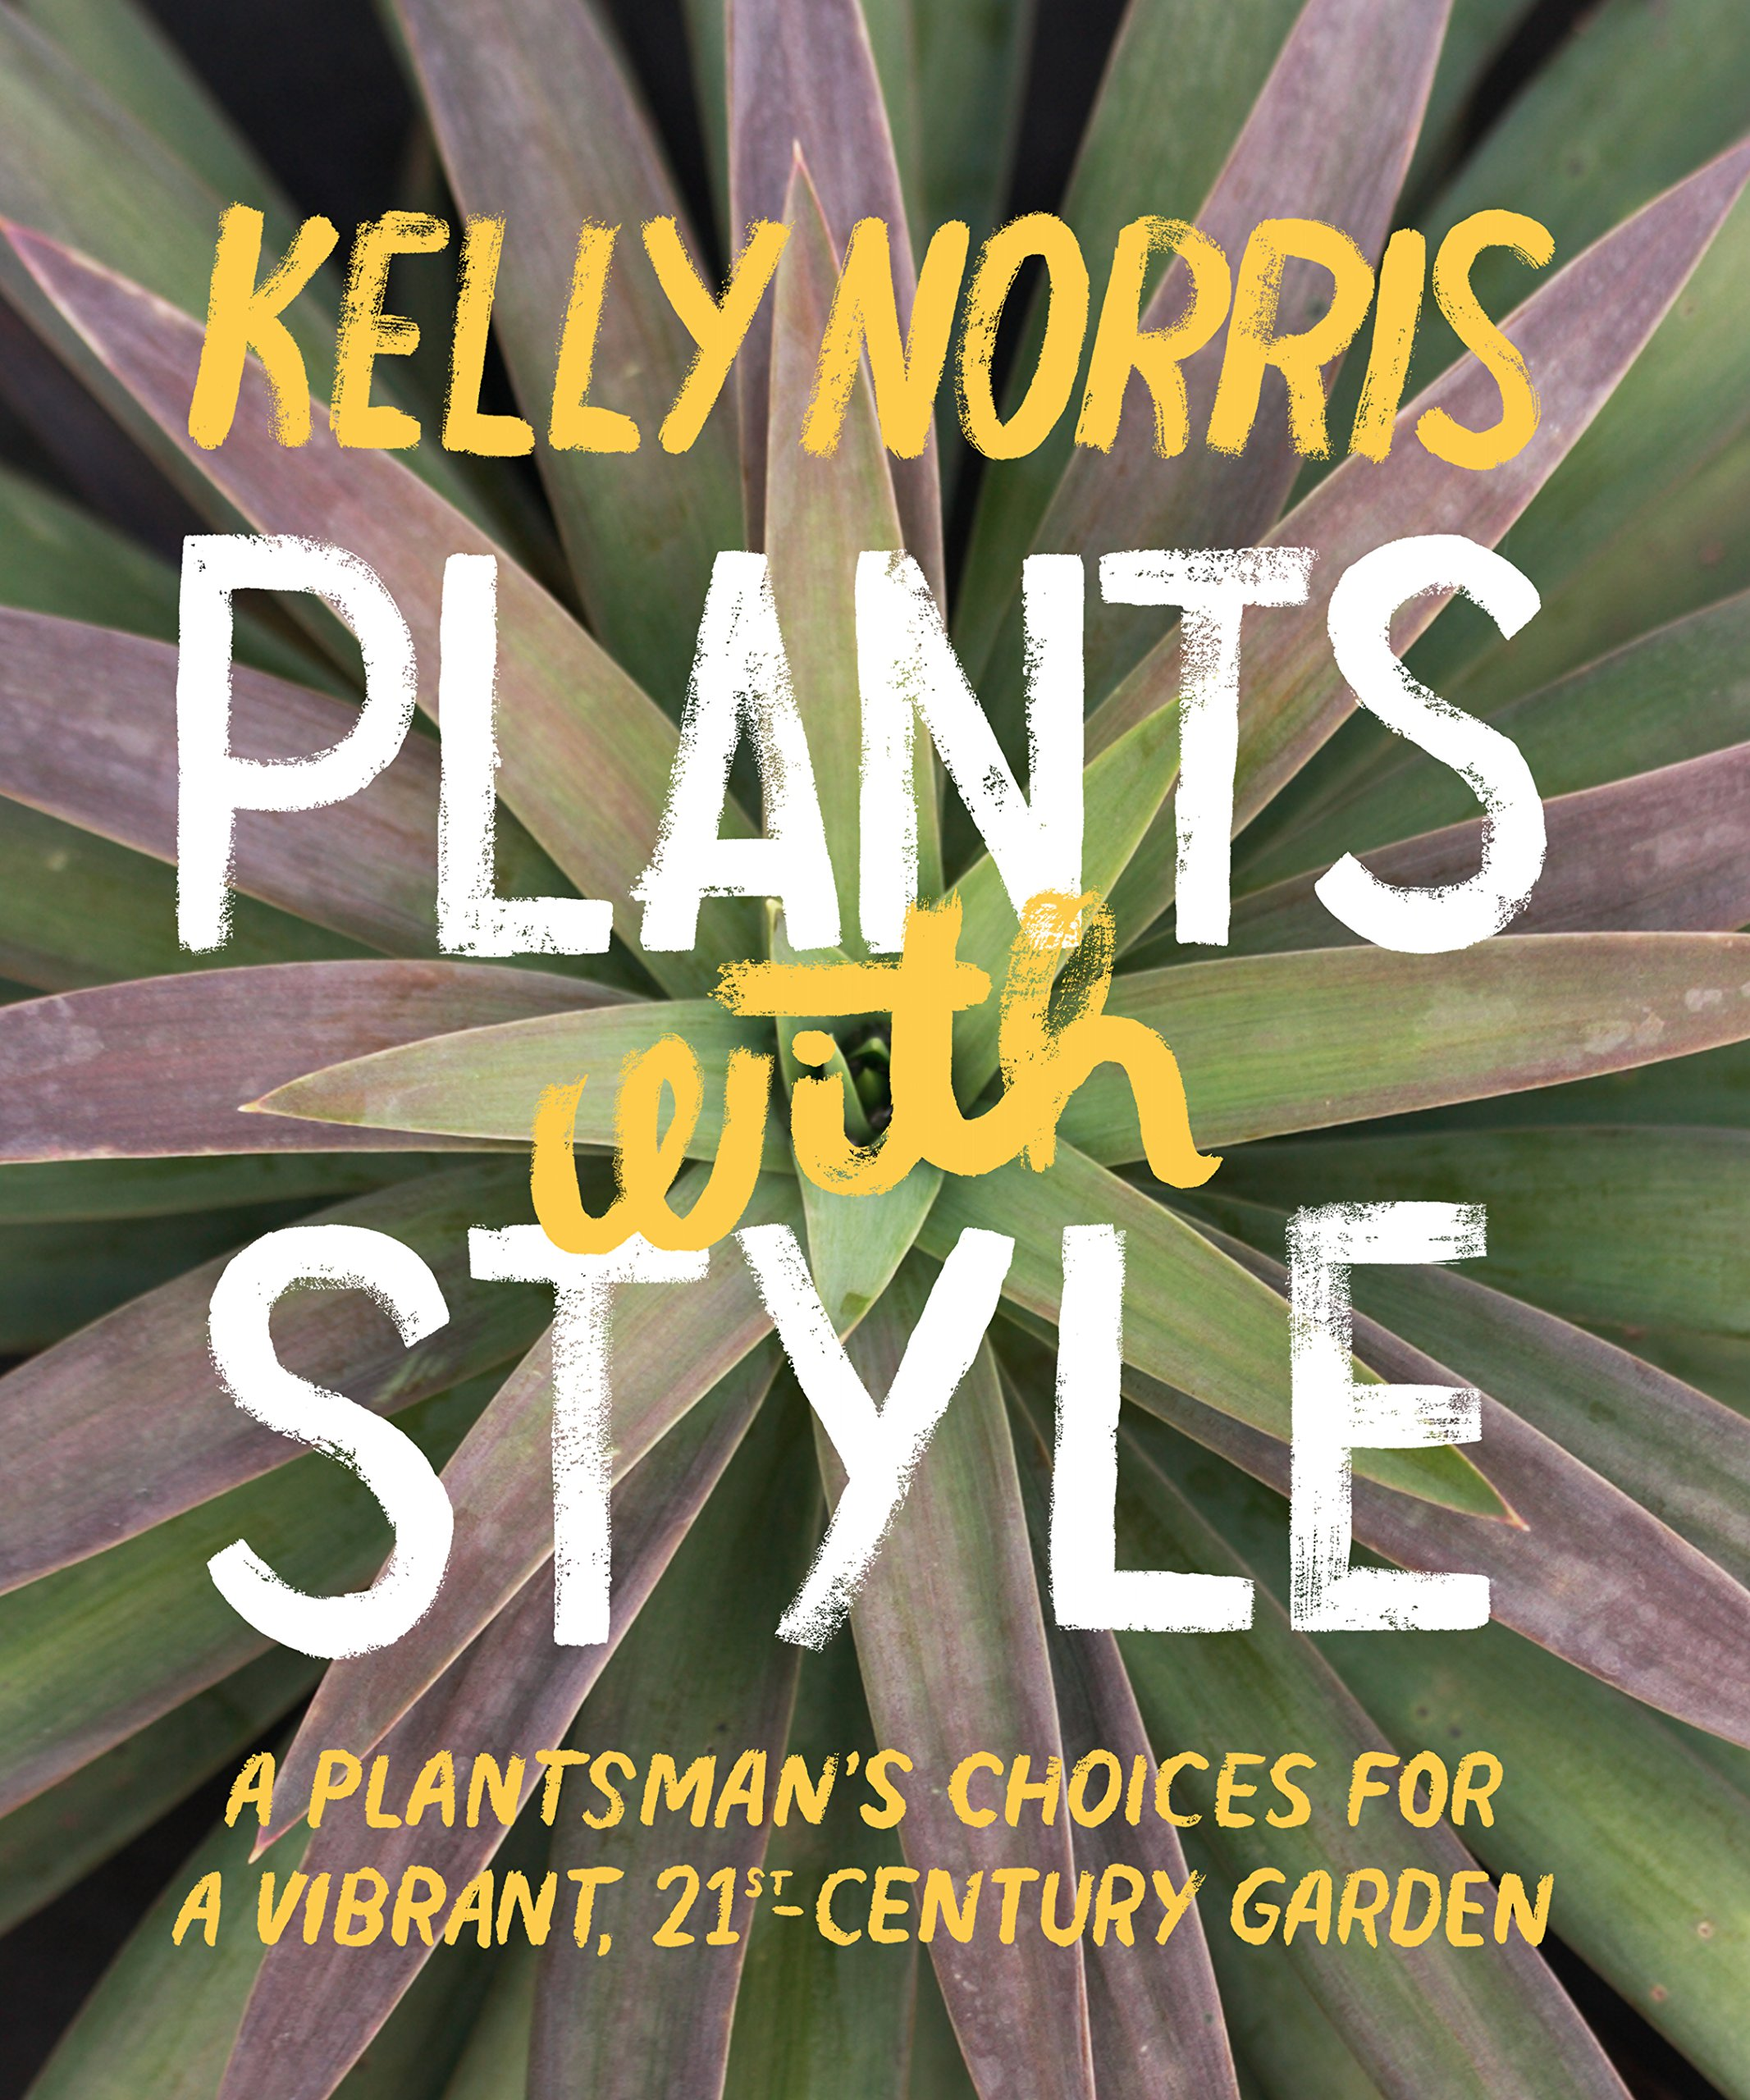 Plants with Style: A Plantsman's Choices for a Vibrant, 21st-Century Garden ebook